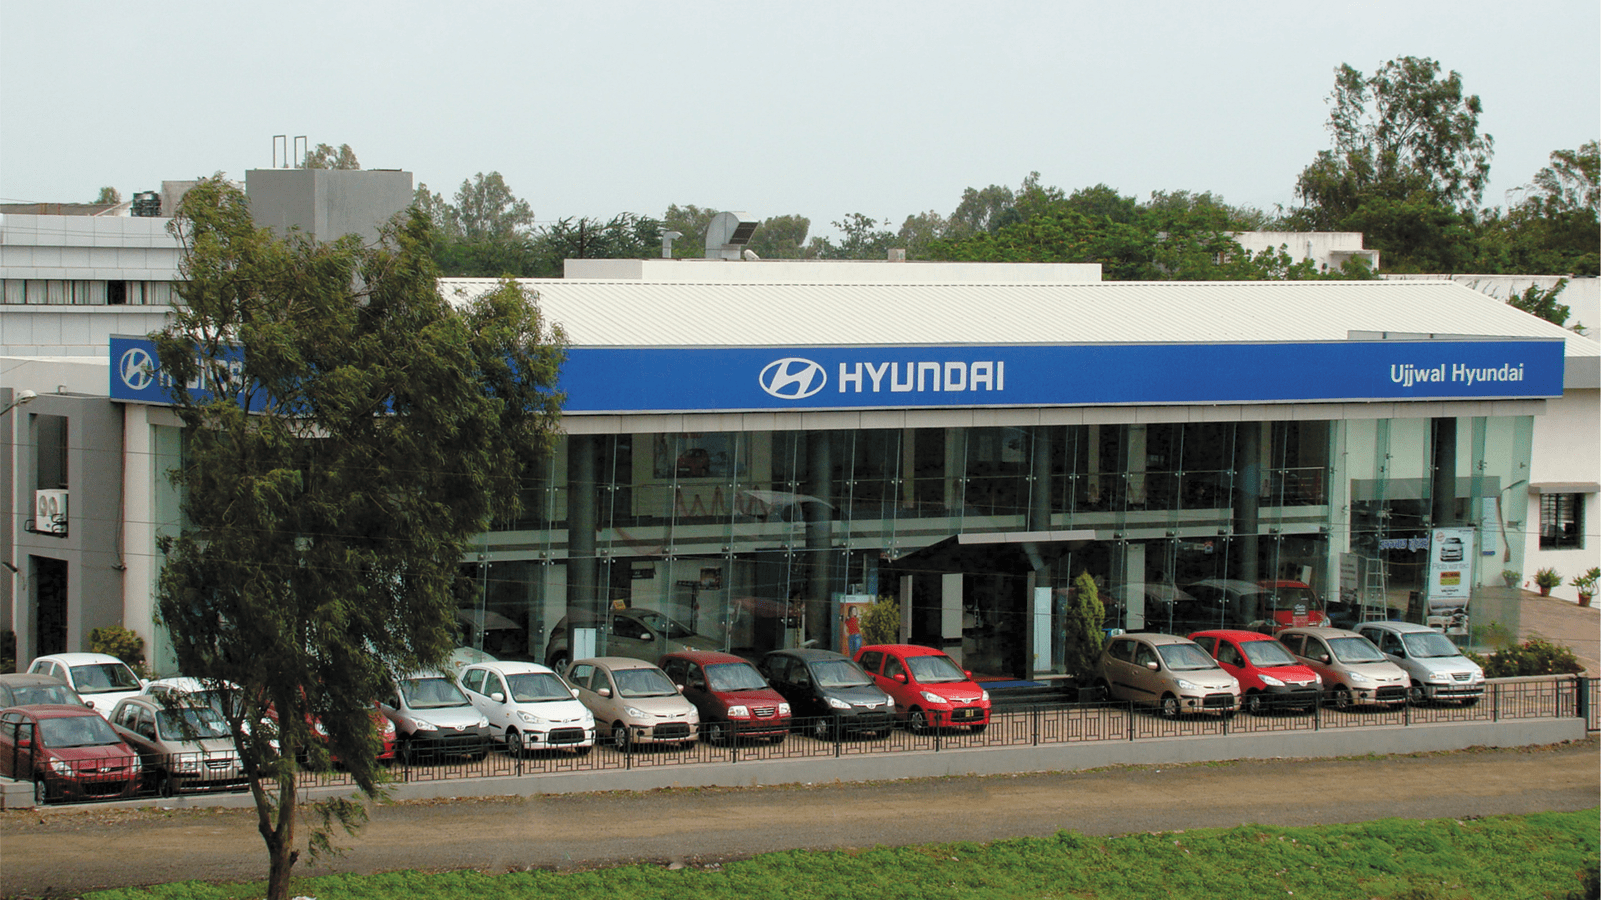 hyundai-1-compress